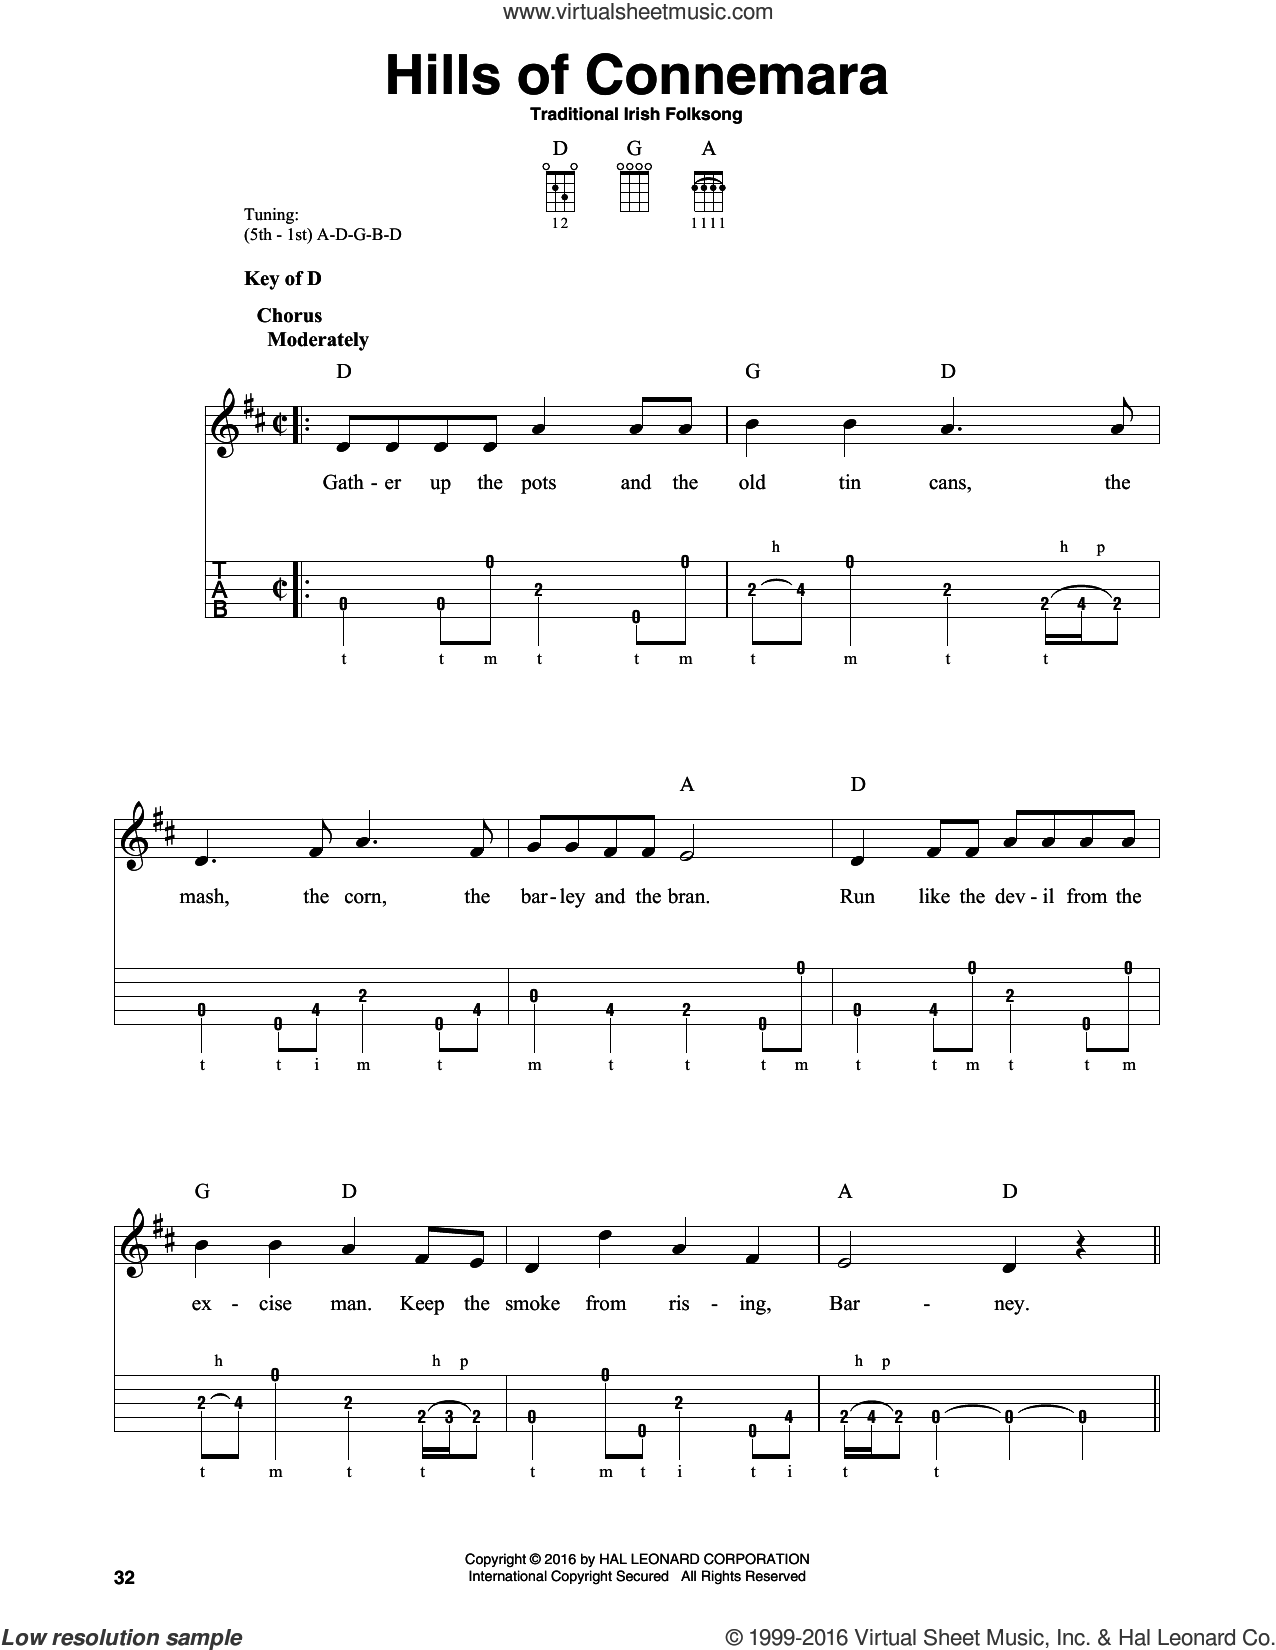 Hills Of Connemara sheet music for banjo solo, intermediate skill level